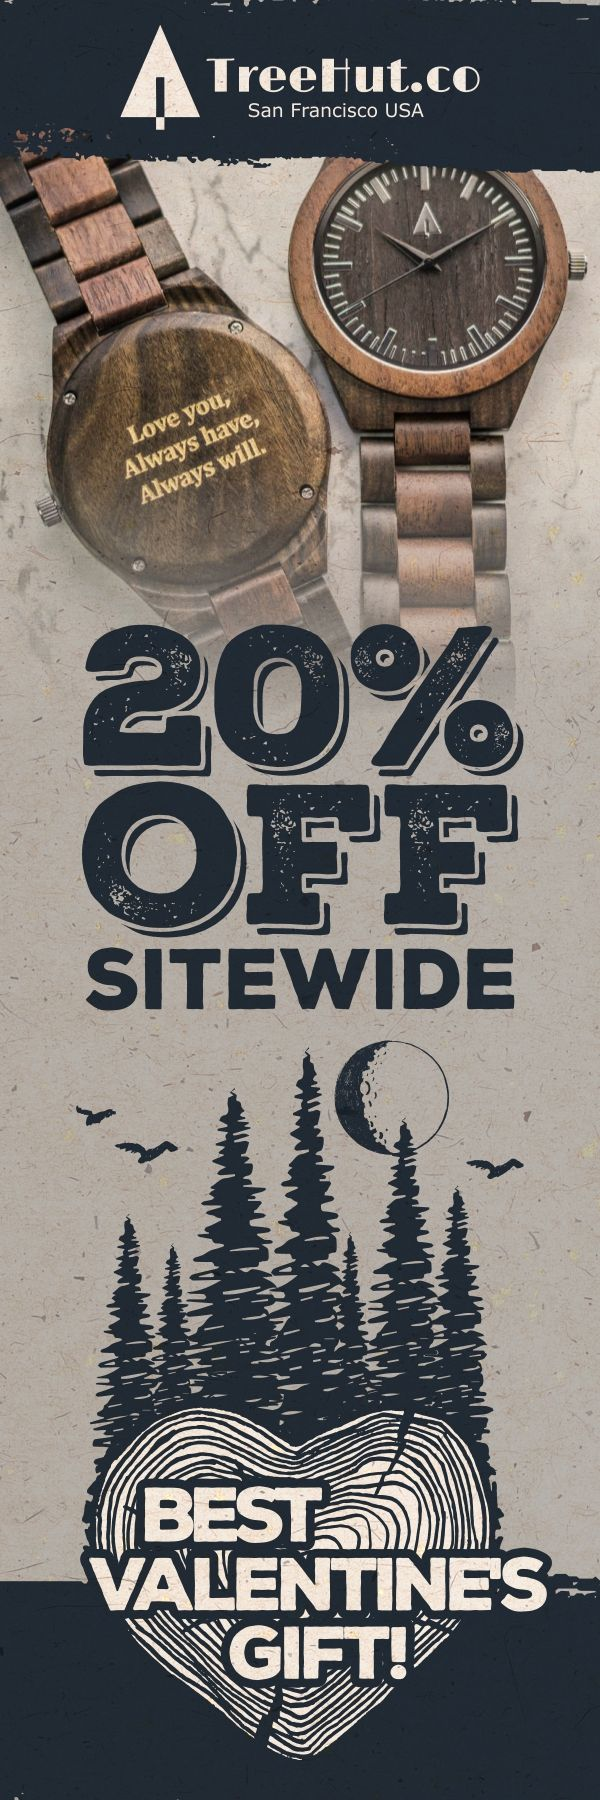 Save 20% off site-wide for the Tree Hut Valentines Day Sale! Handcrafted in San Francisco. Nature-inspired designs that make the perfect gift for your special ones! See the full collection at Treehut Co.